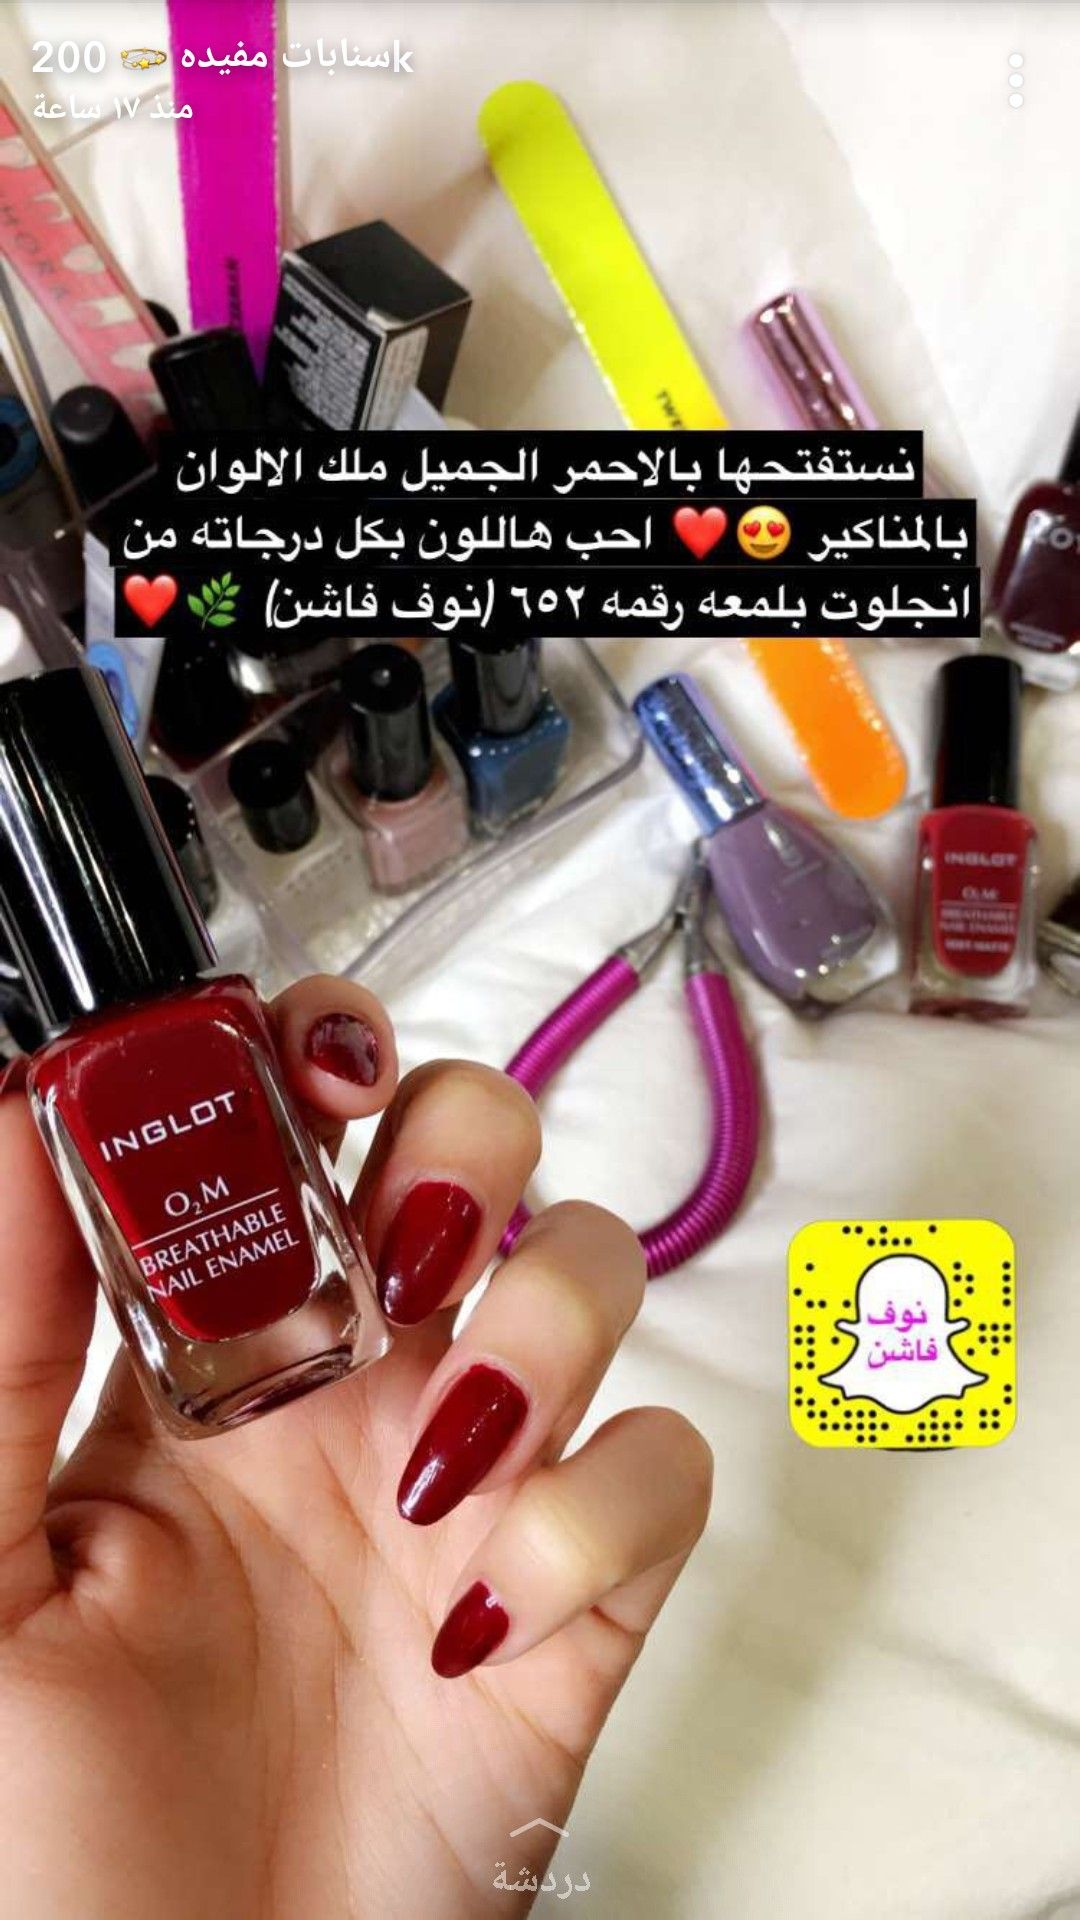 Pin by وهم on fashion موضه Makeup kit essentials, Dream